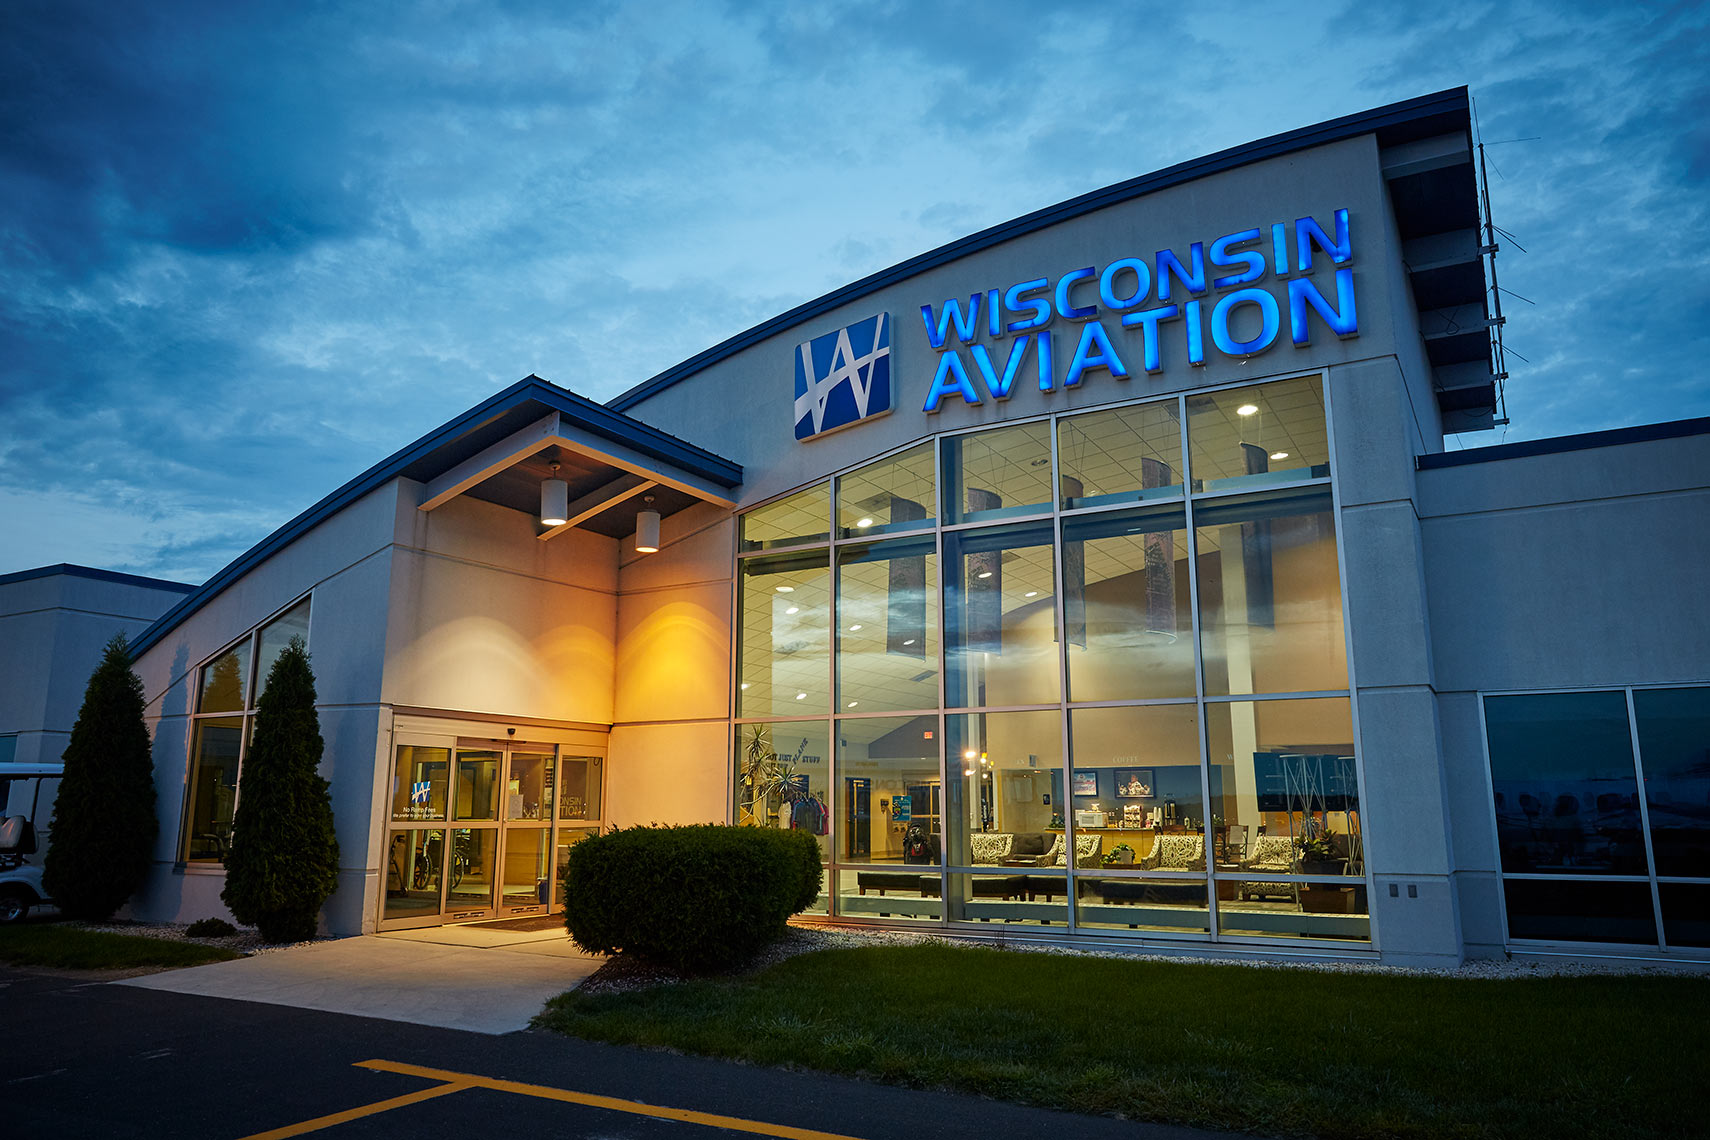 Wisconsin Aviation, Madison, Wisconsin - Aviation Photographer- Steve Craft Photography - Phoenix, Arizona